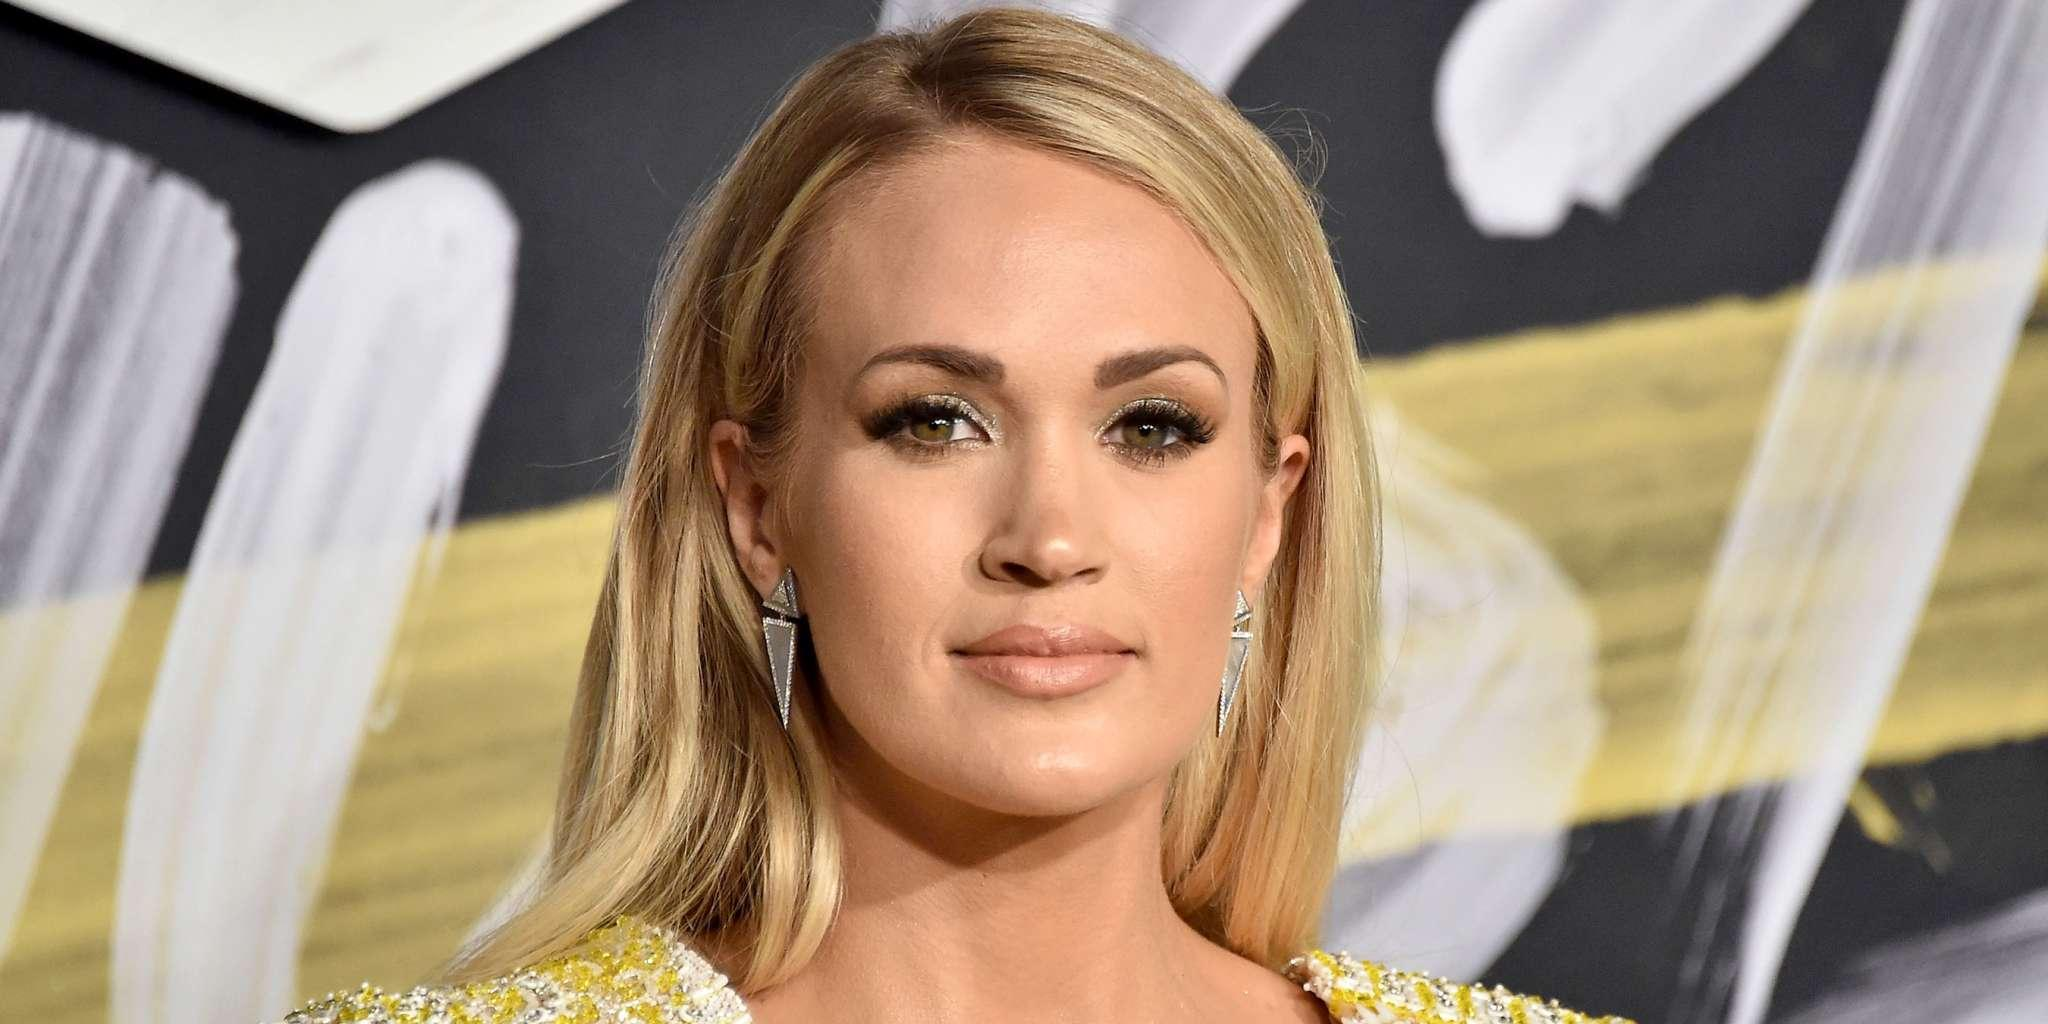 Carrie Underwood Having A Hard Time While Expecting Her Second Son And Dealing With Pregnancy Insomnia!